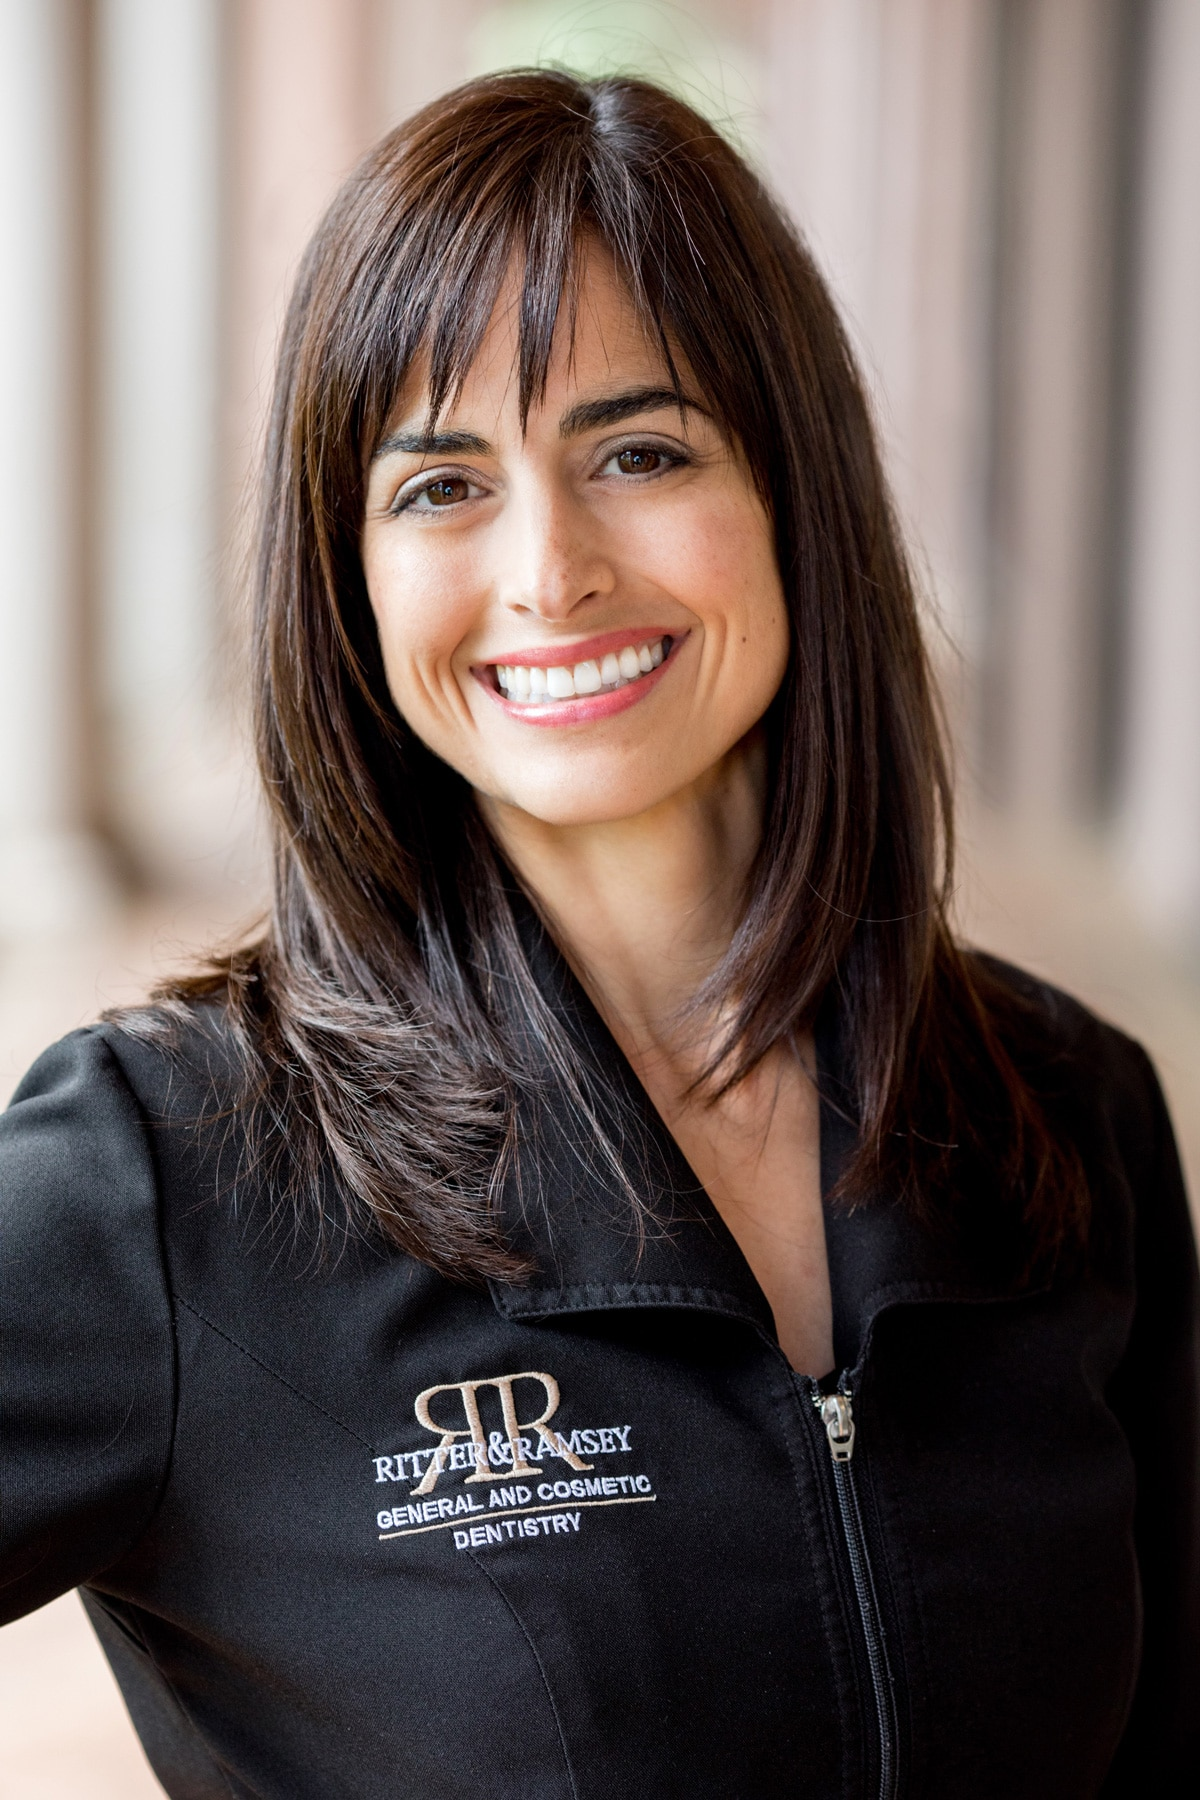 Meet Laura at Ritter & Ramsey General And Cosmetic Dentistry in Jupiter, FL.